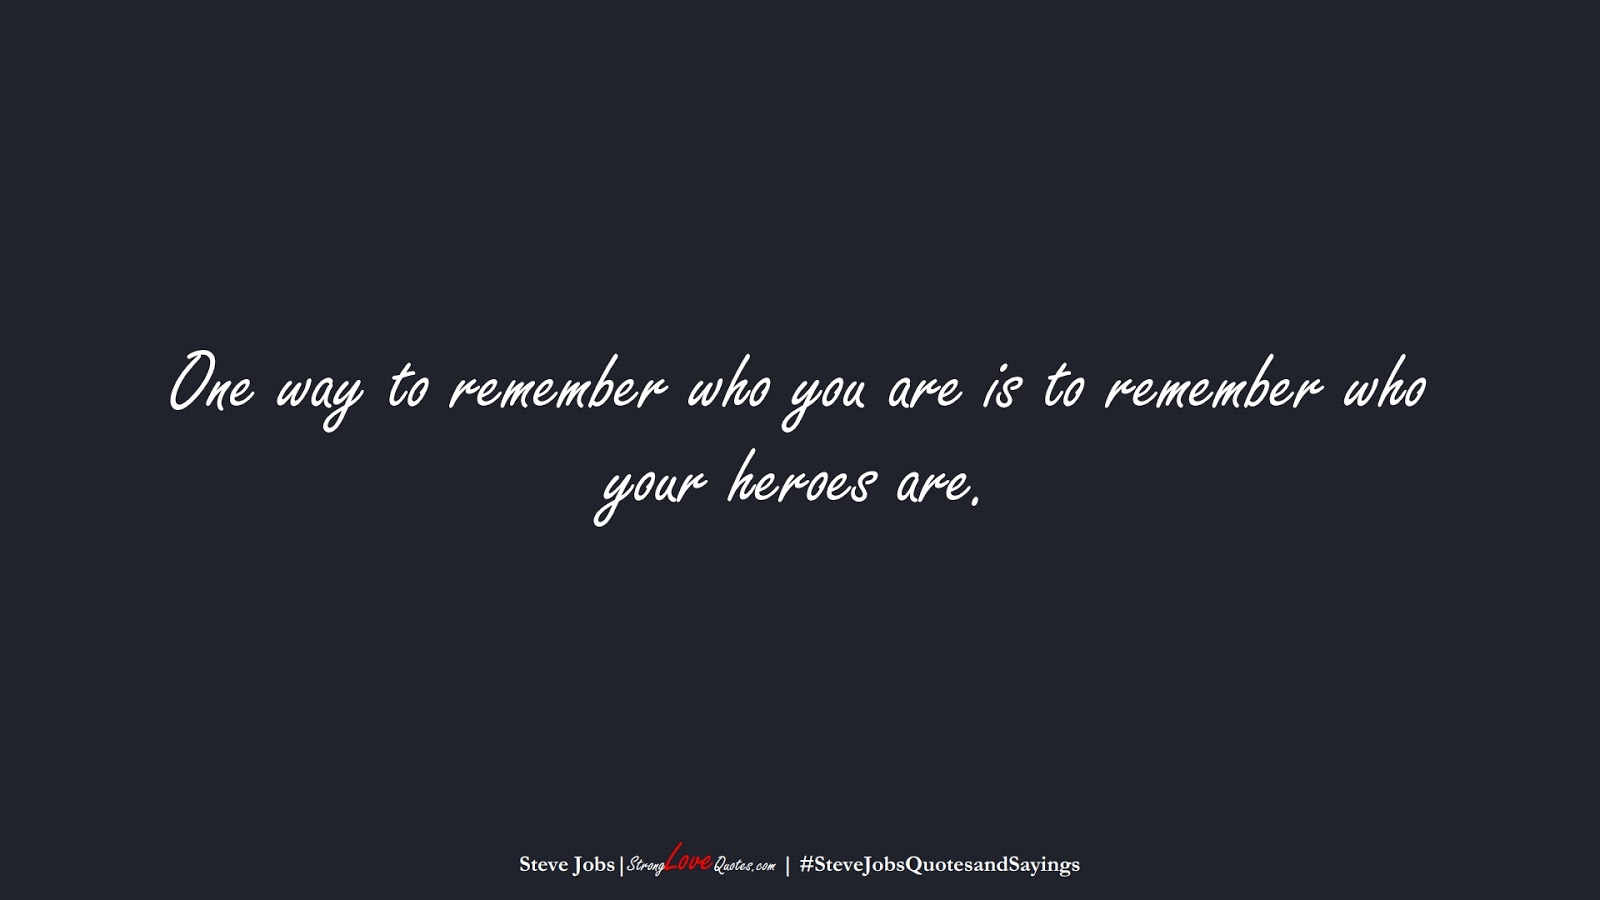 One way to remember who you are is to remember who your heroes are. (Steve Jobs);  #SteveJobsQuotesandSayings